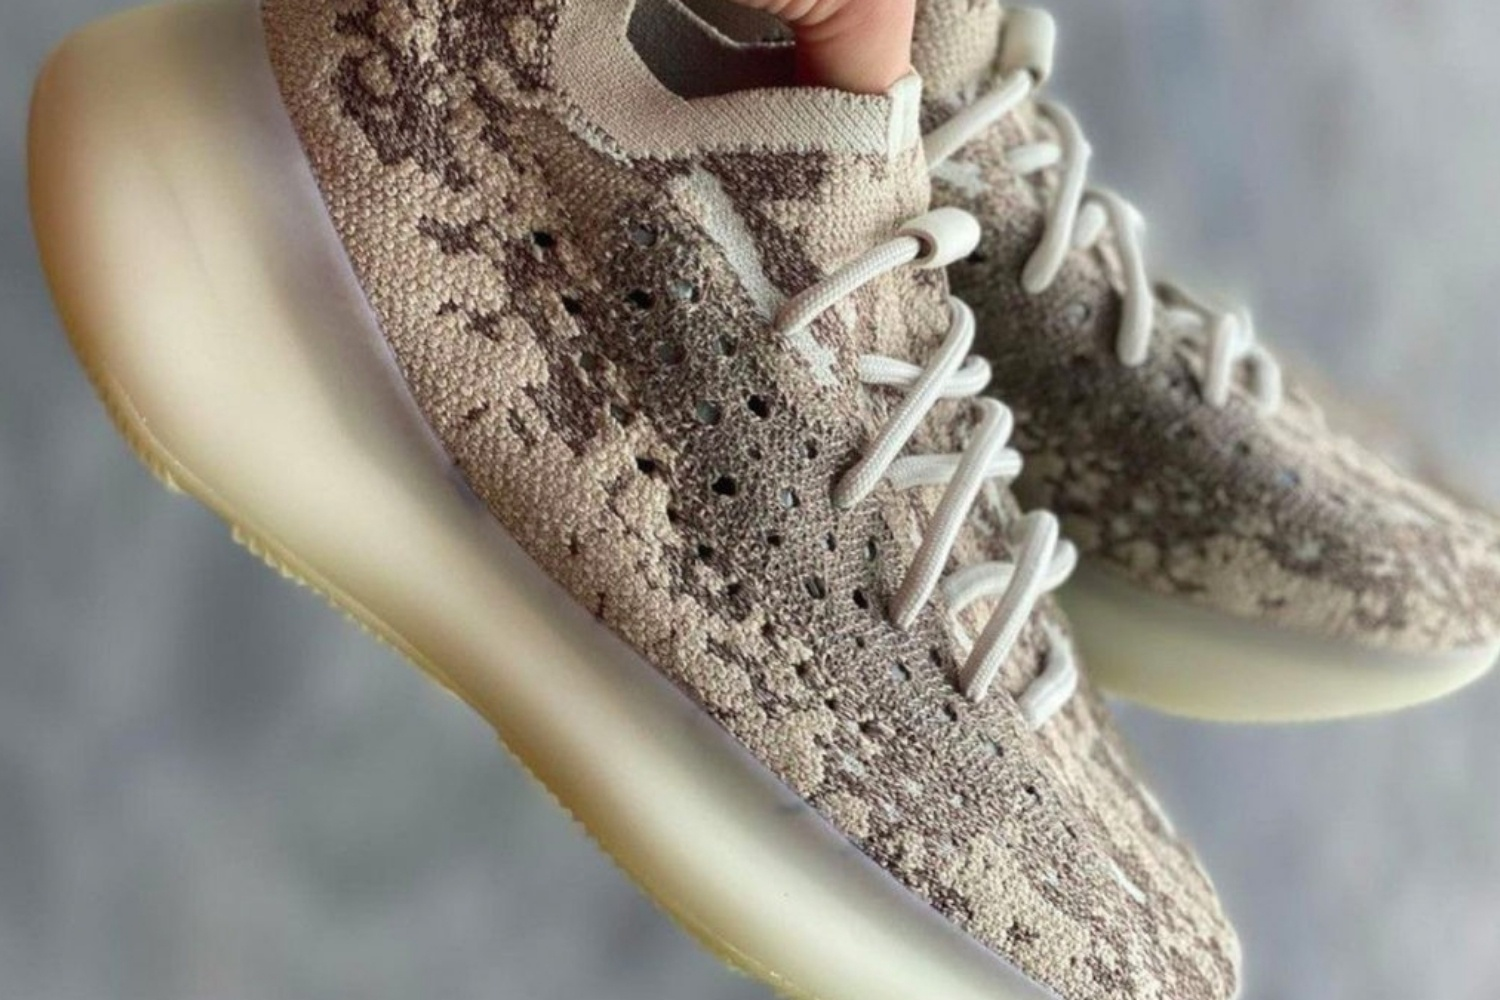 adidas Yeezy Boost 380 comes with 'Pyrite' colorway